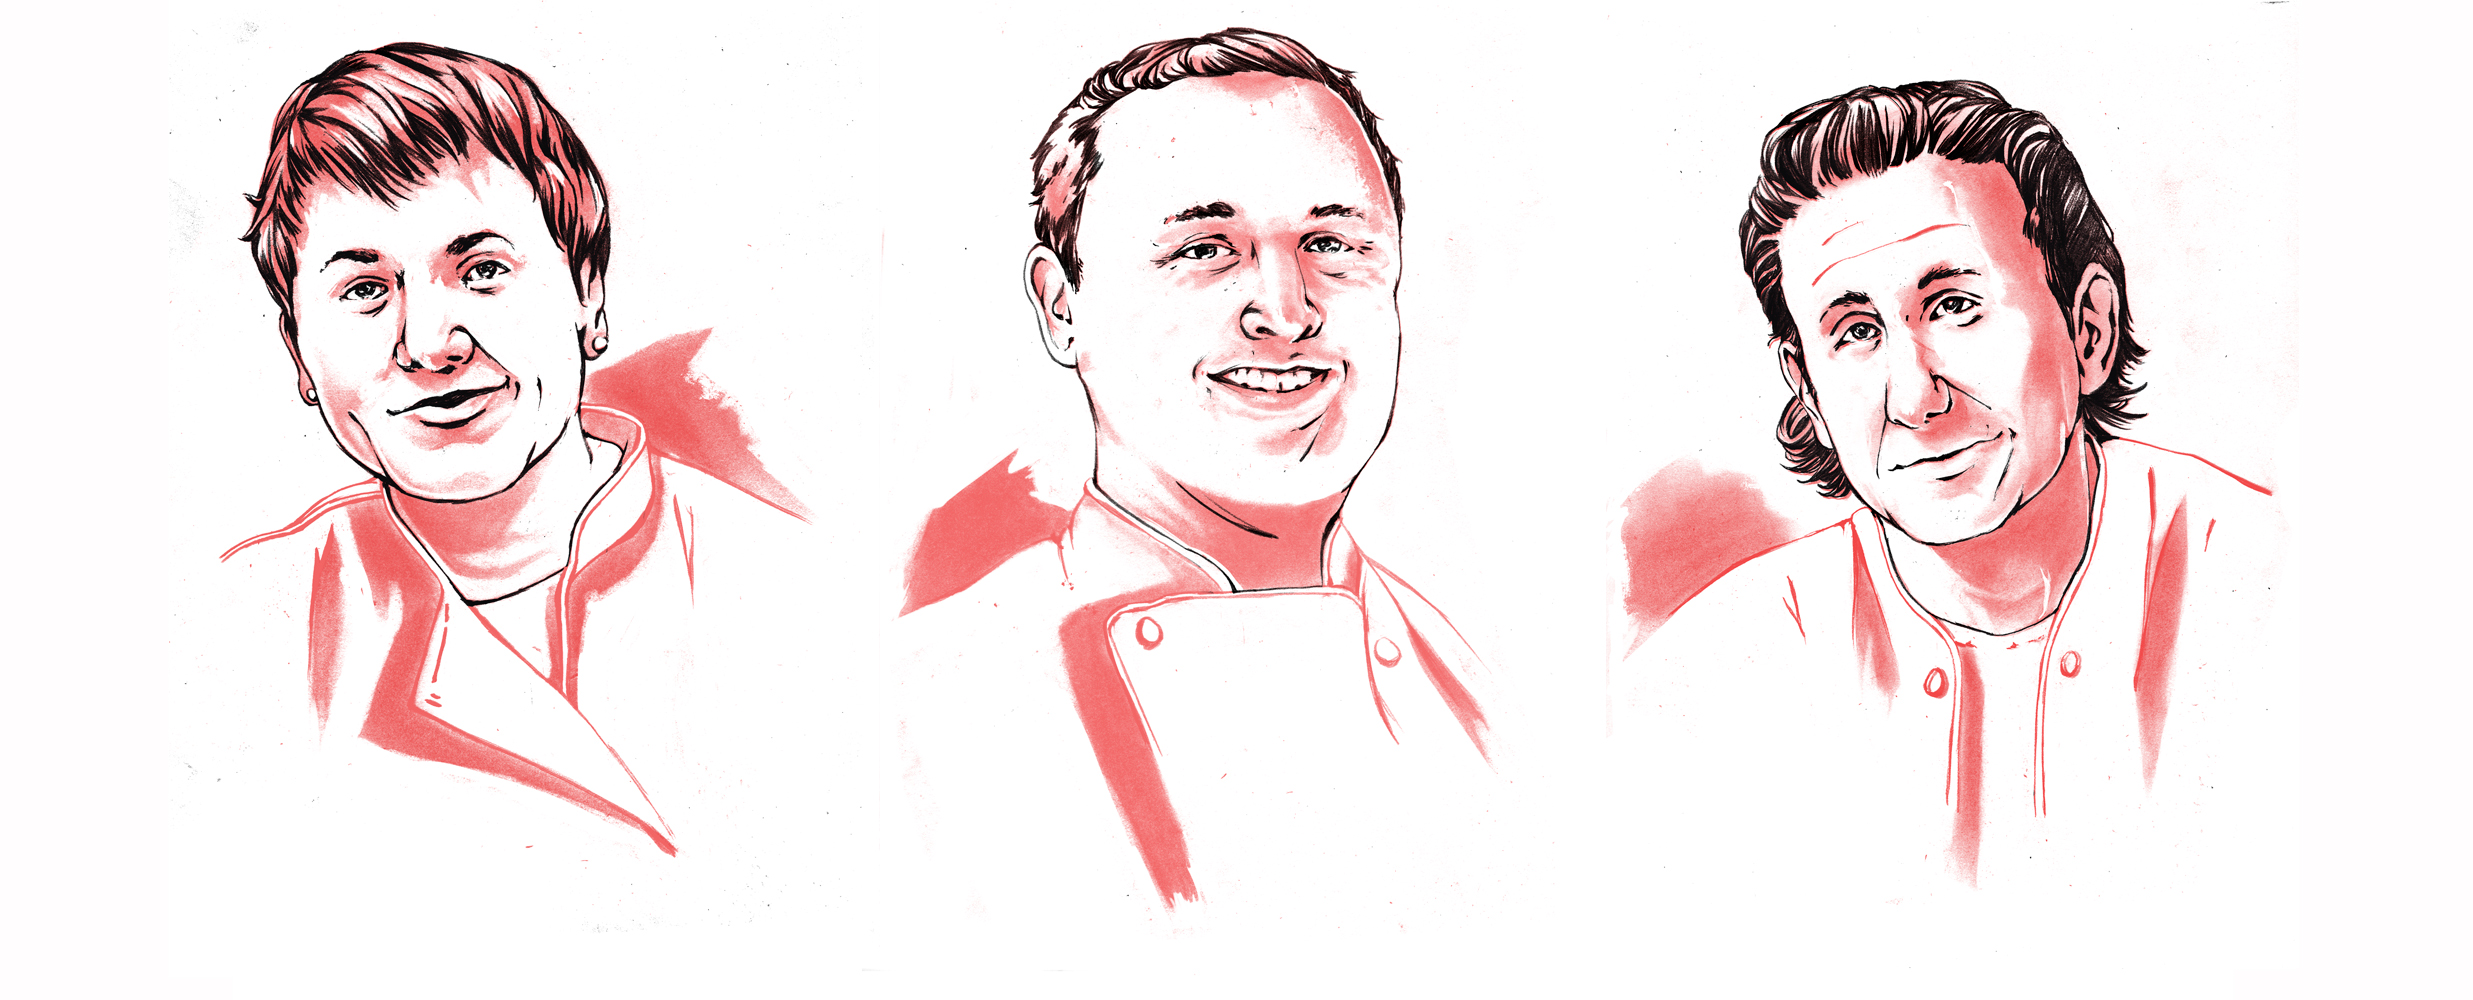 Selections from Chef Portraits created for Philly Magazines The (New) Cheap Eats Issue- October 2016